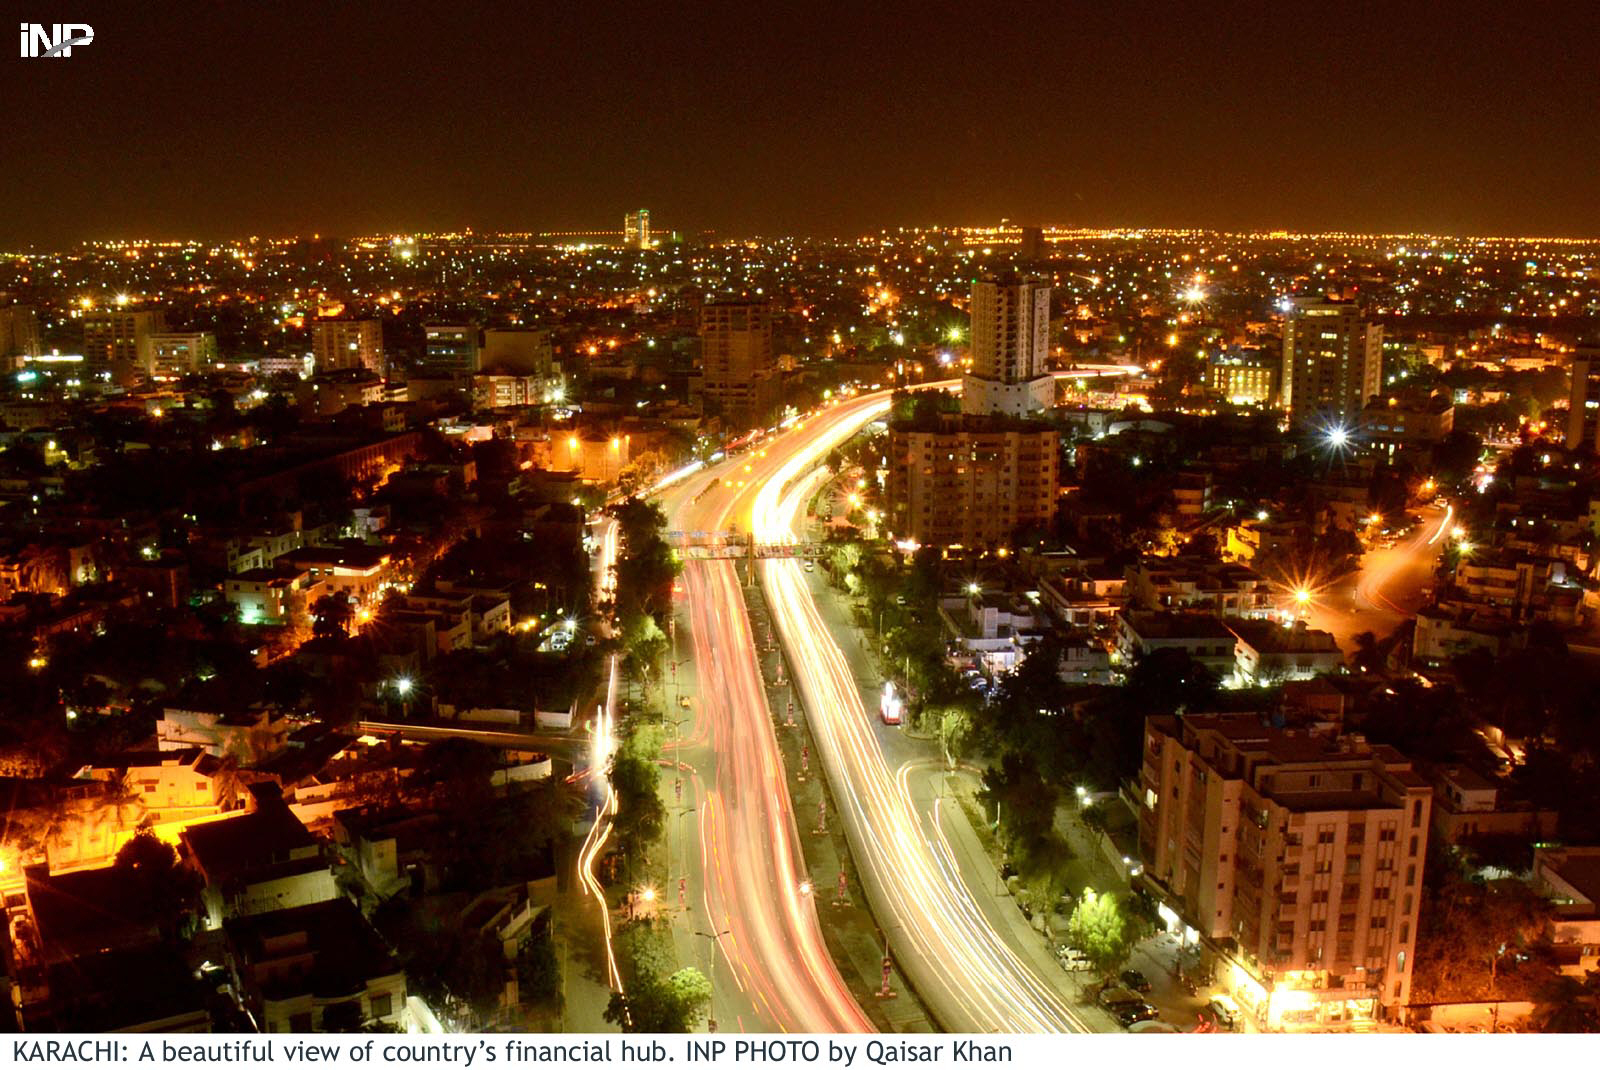 khi_city_view_inp-2-4-2